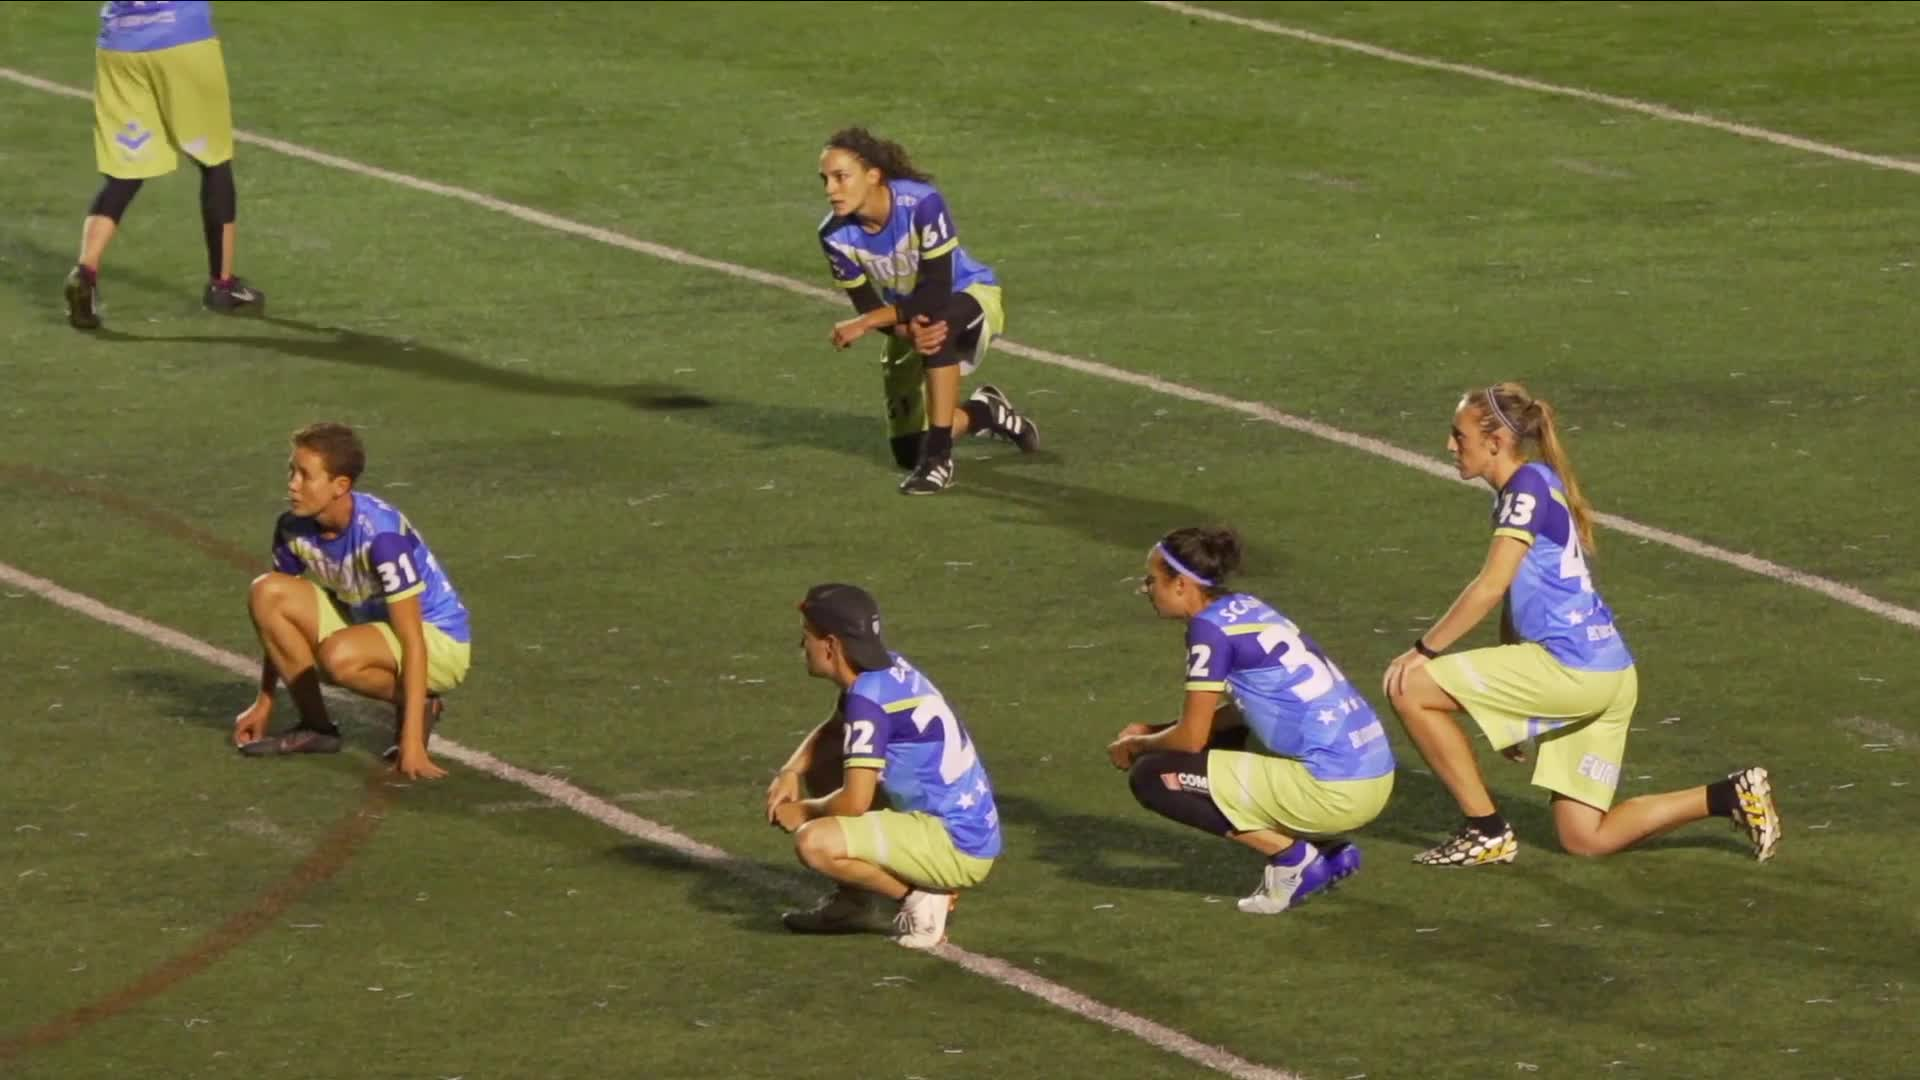 american ultimate disc league, audl, ultimate, ultimate frisbee, Eurostars sync'd GIFs